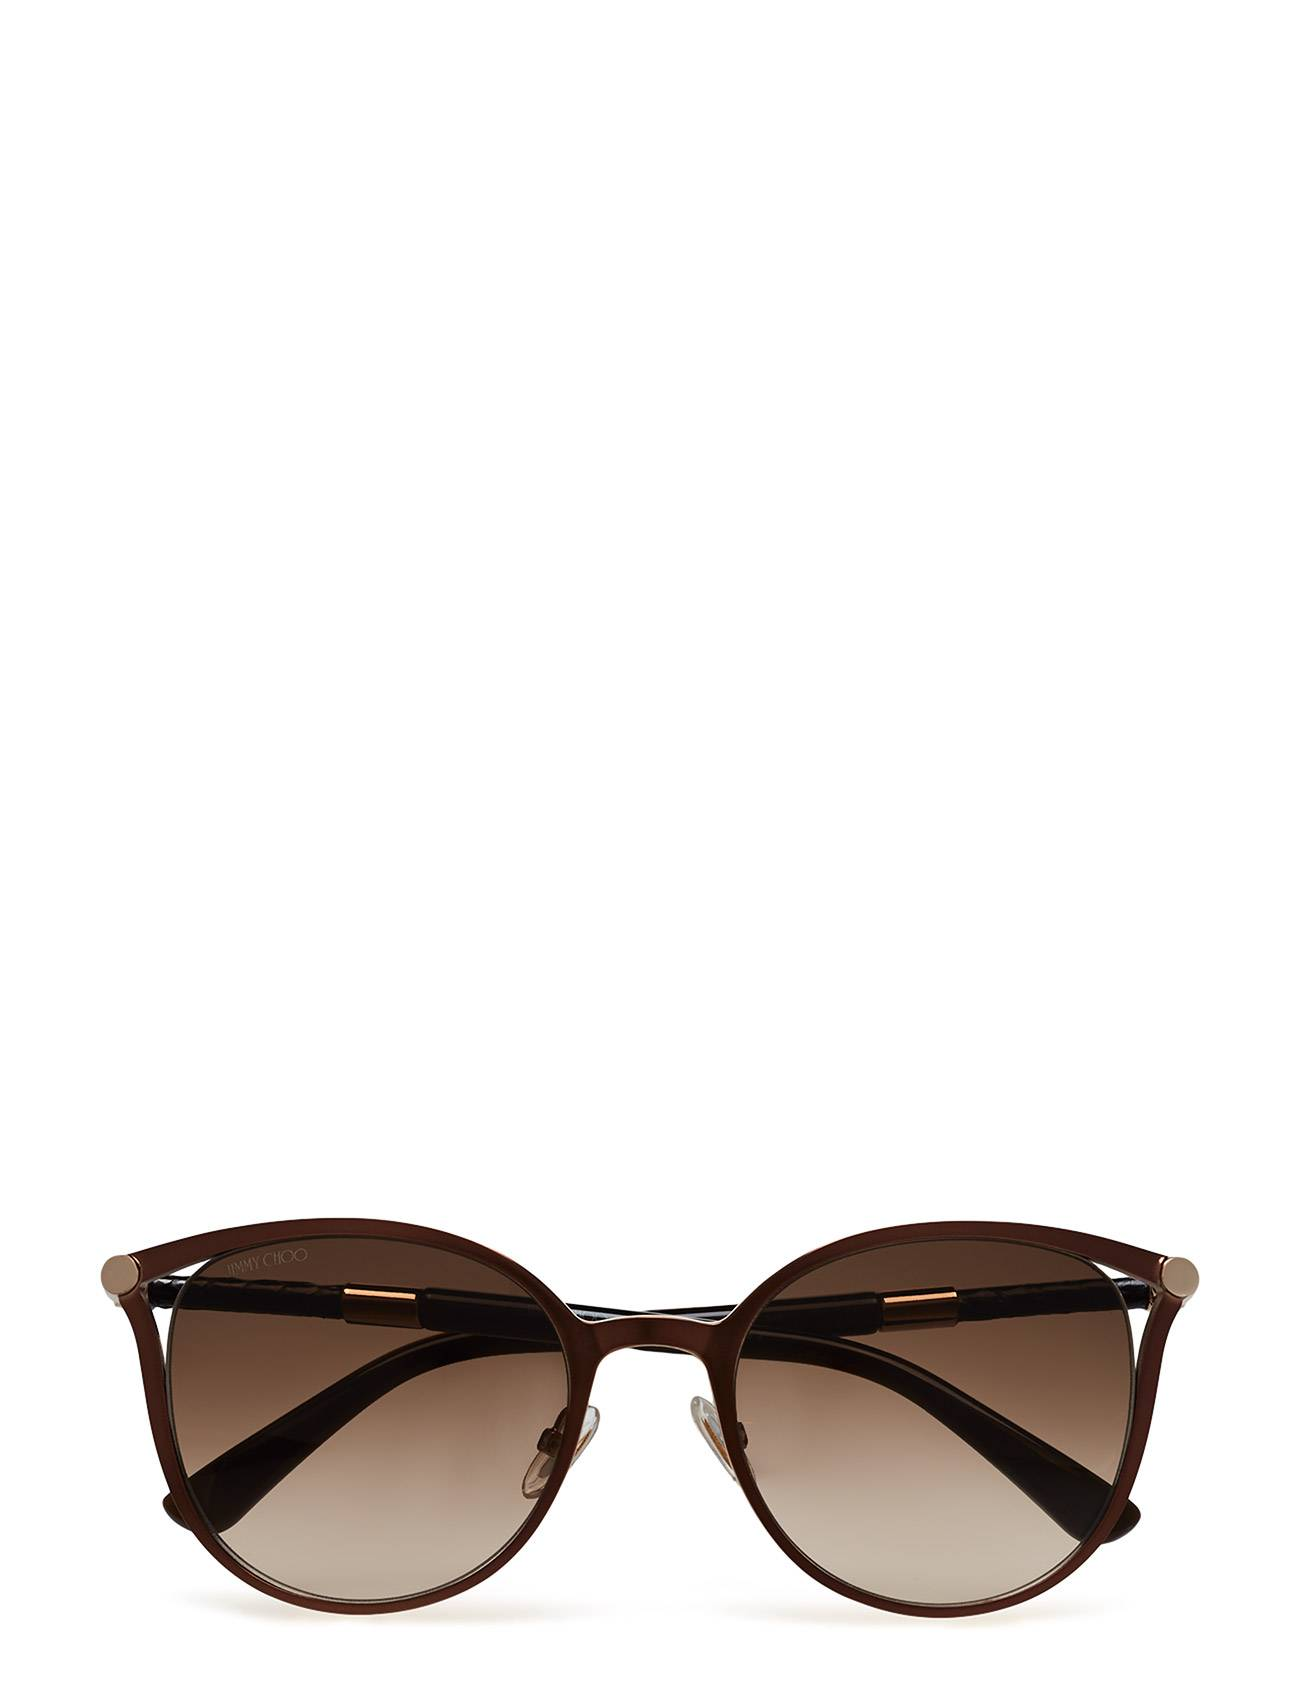 Jimmy Choo Sunglasses Neiza/S